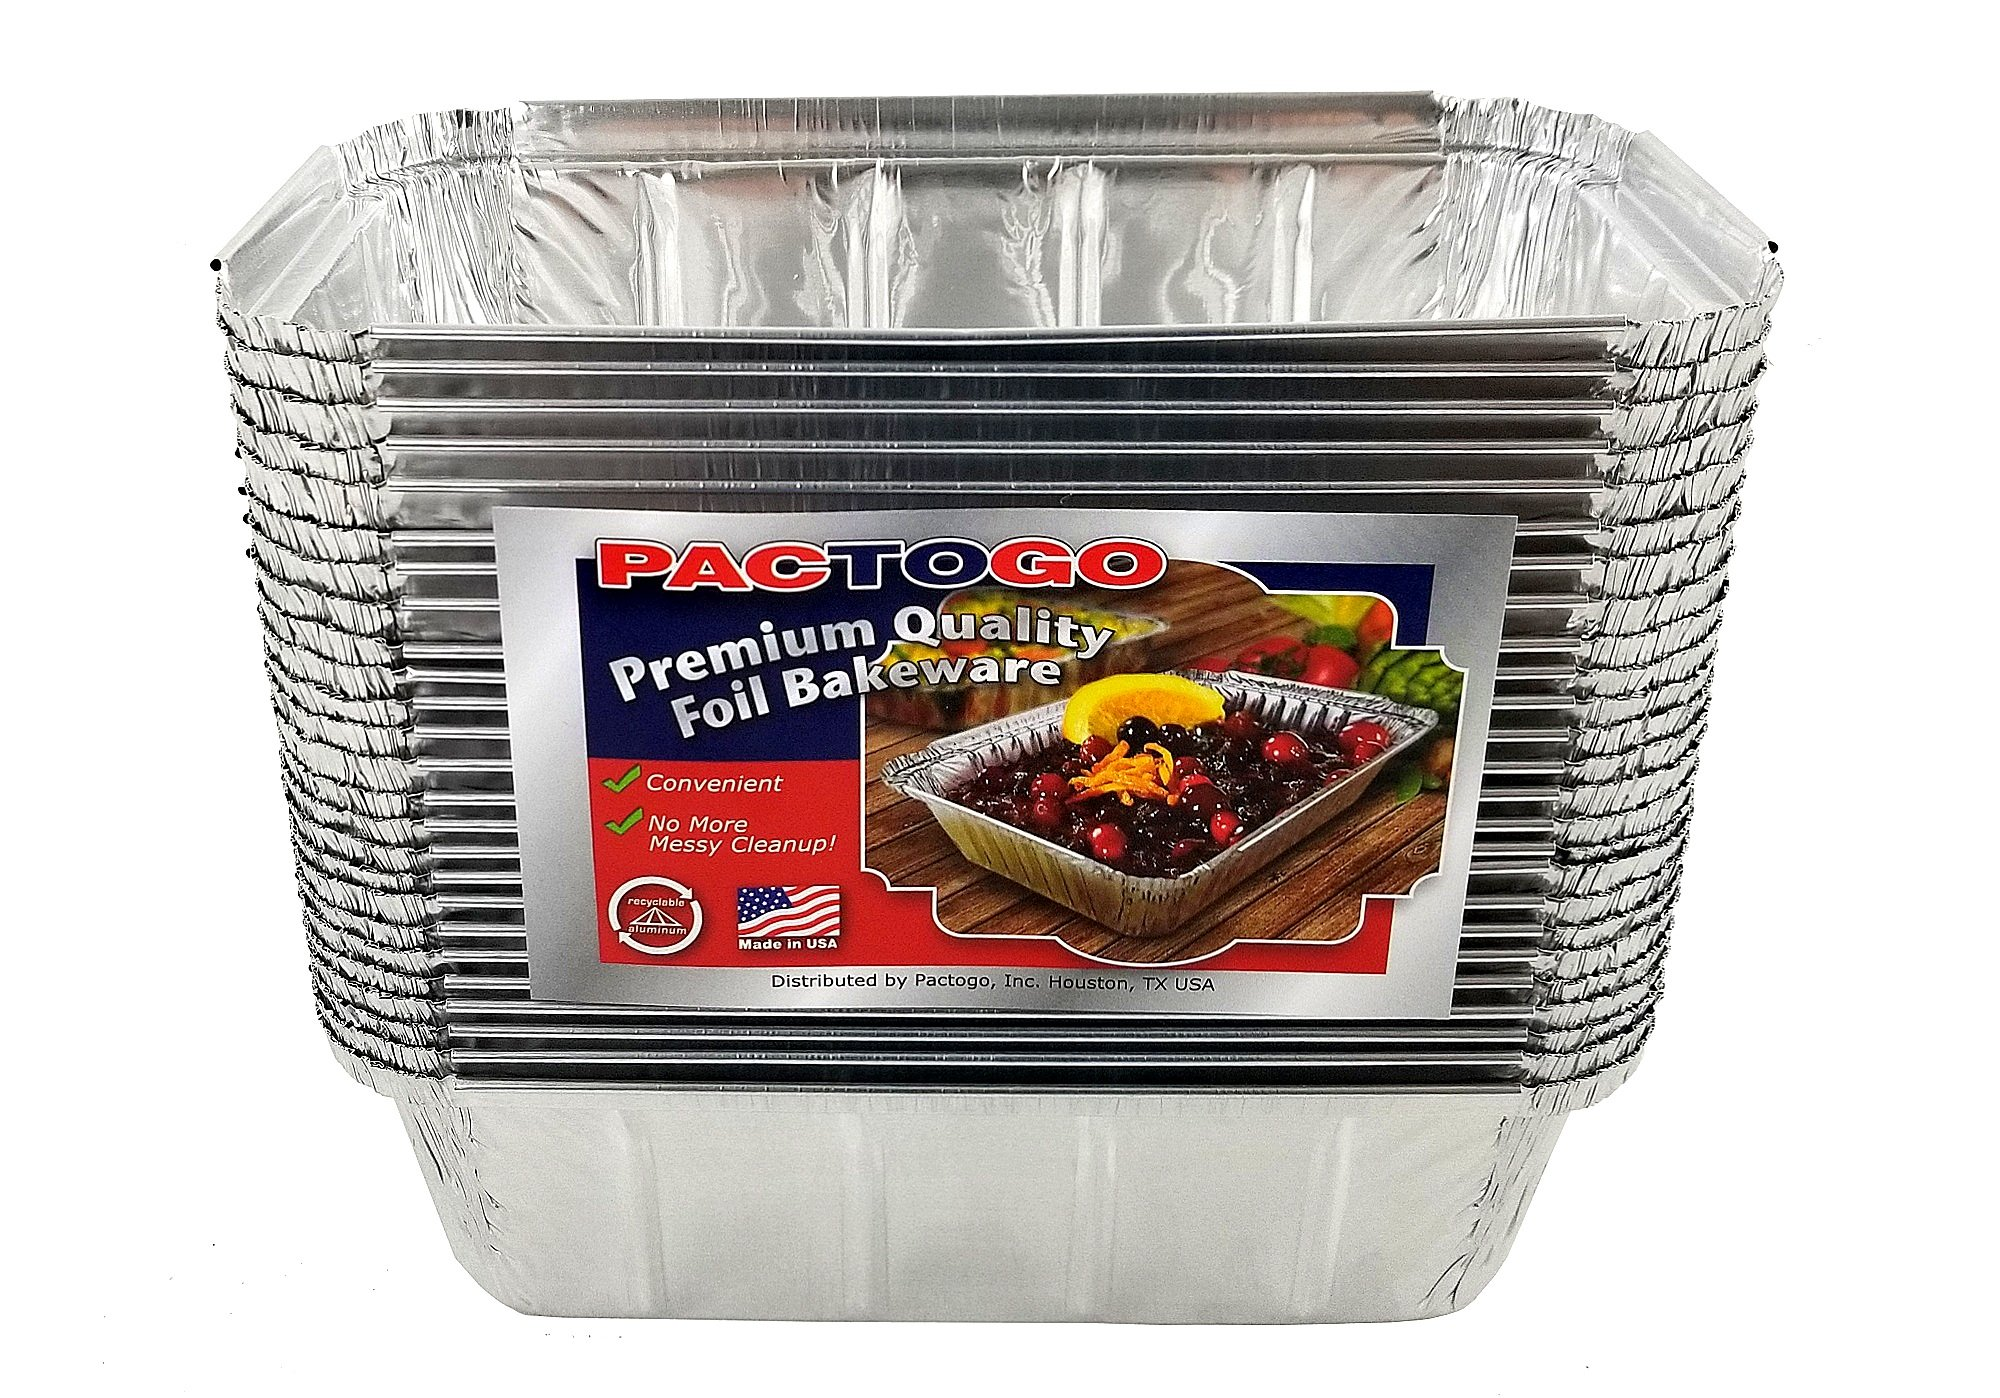 Pactogo 1 1/2 lb. IVC Disposable Aluminum Foil Loaf Bread Pan w/Board Lid (8'' x 4.1'' x 2.2'') - Heavy Duty Made in USA (Pack of 50 Sets) by PACTOGO (Image #6)